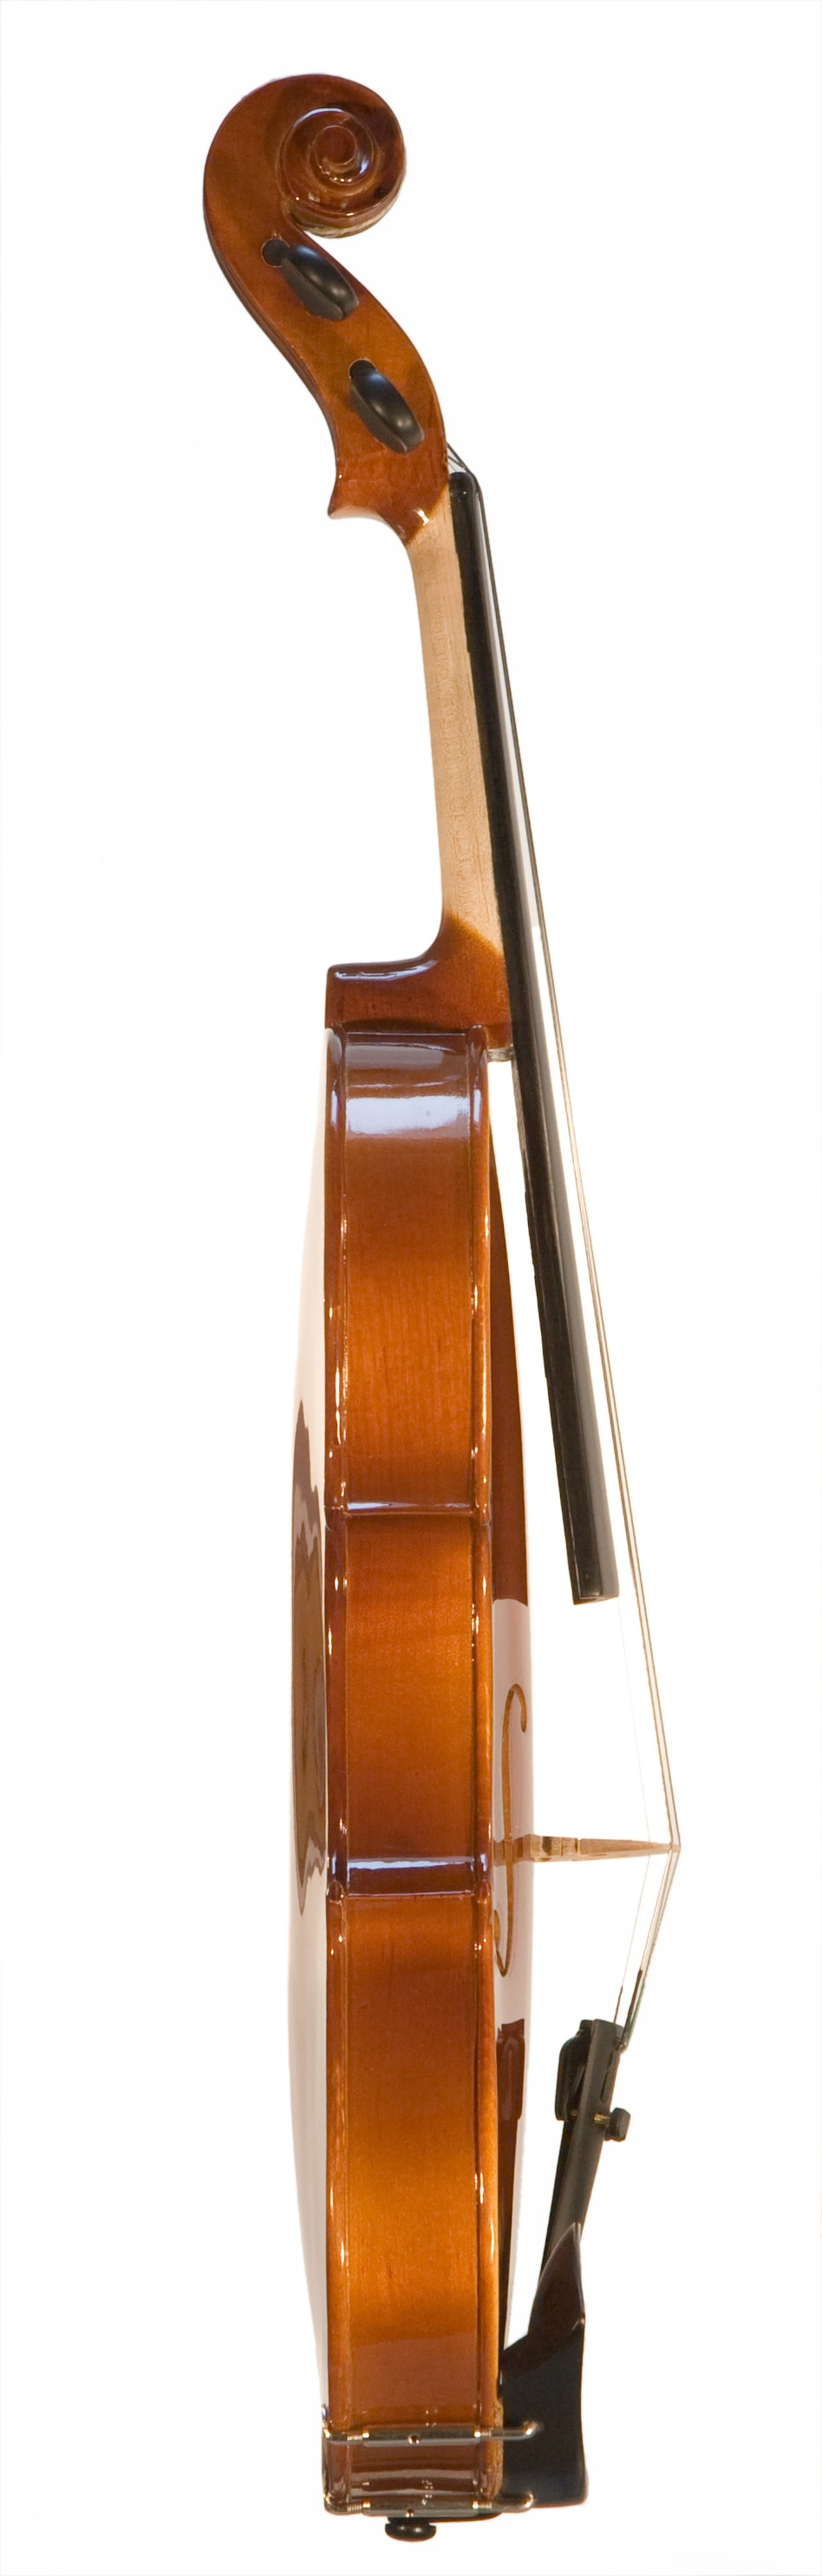 Side view of a violin isolated on a white background : Free Stock Photo